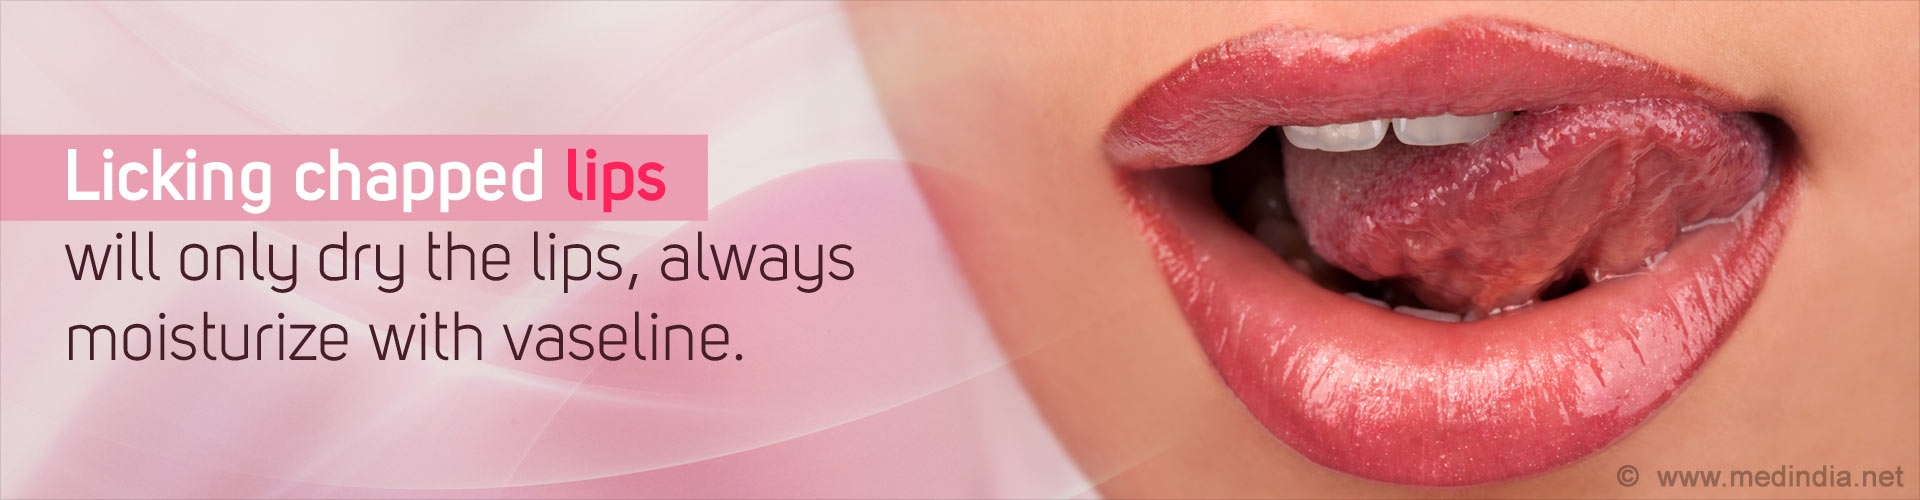 Licking chapped lips will only dry the lips, always moisturize with vaseline.